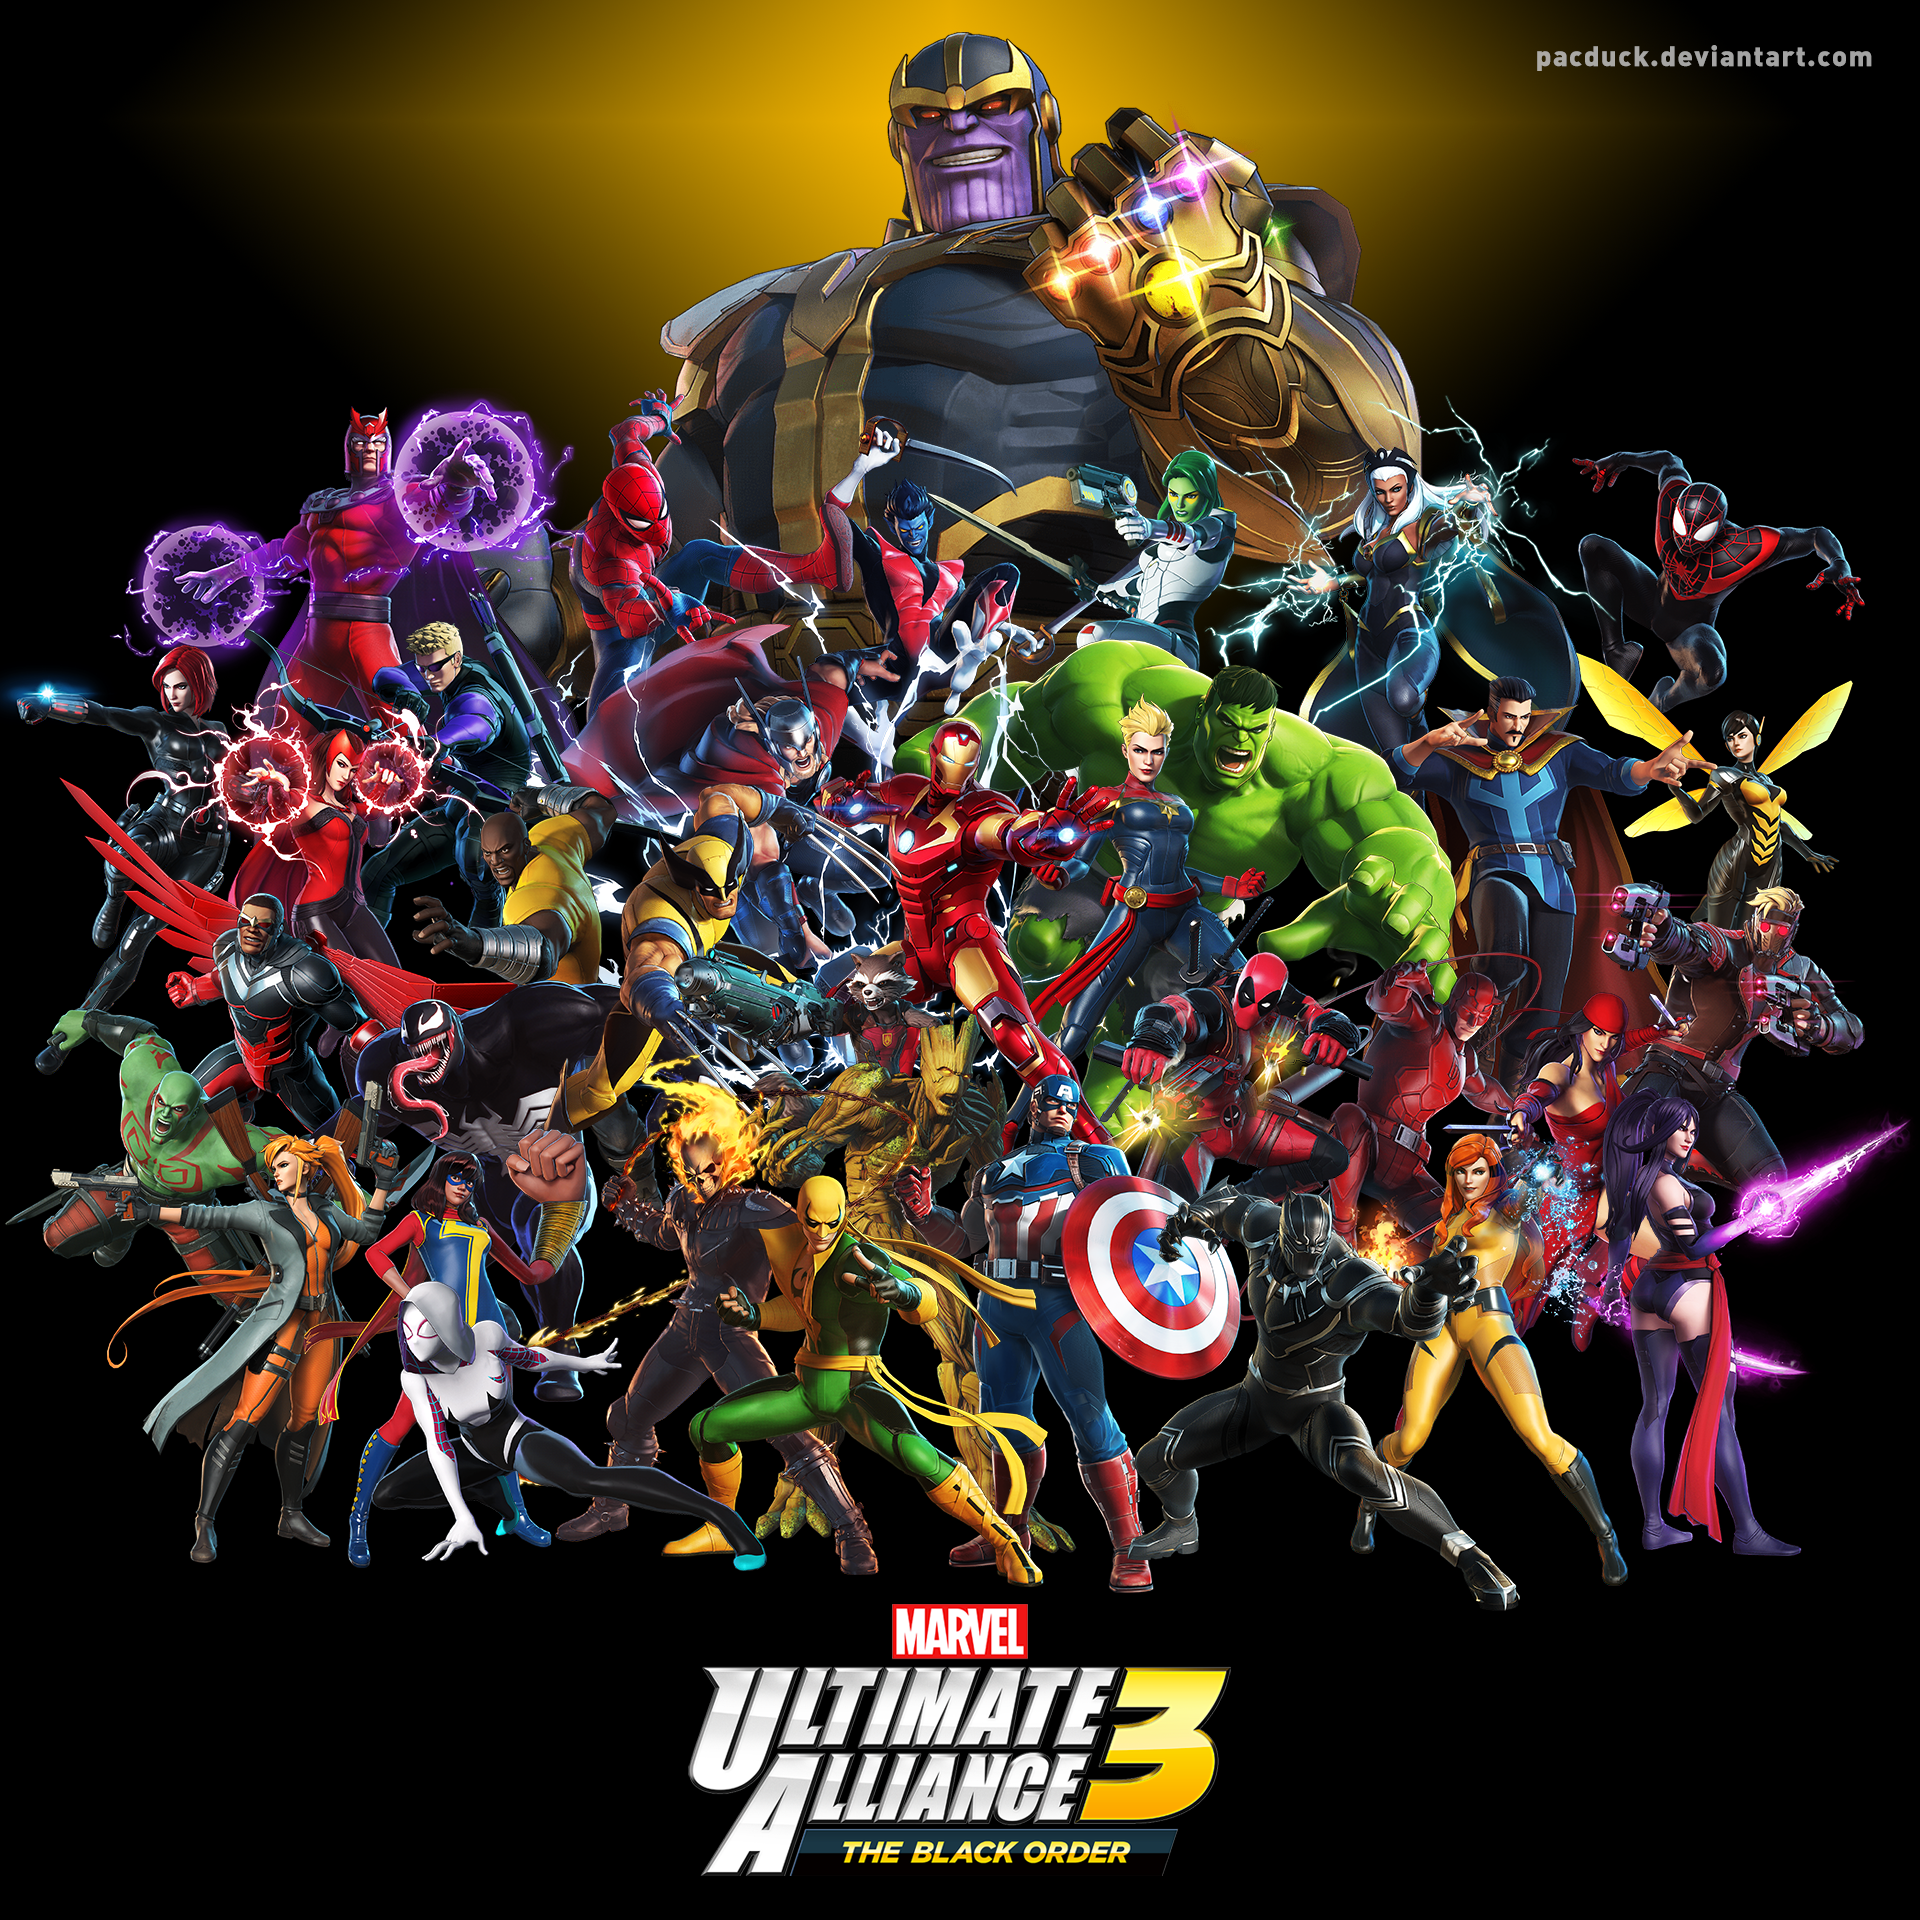 Marvel Ultimate Alliance 3 By Pacduck On Deviantart